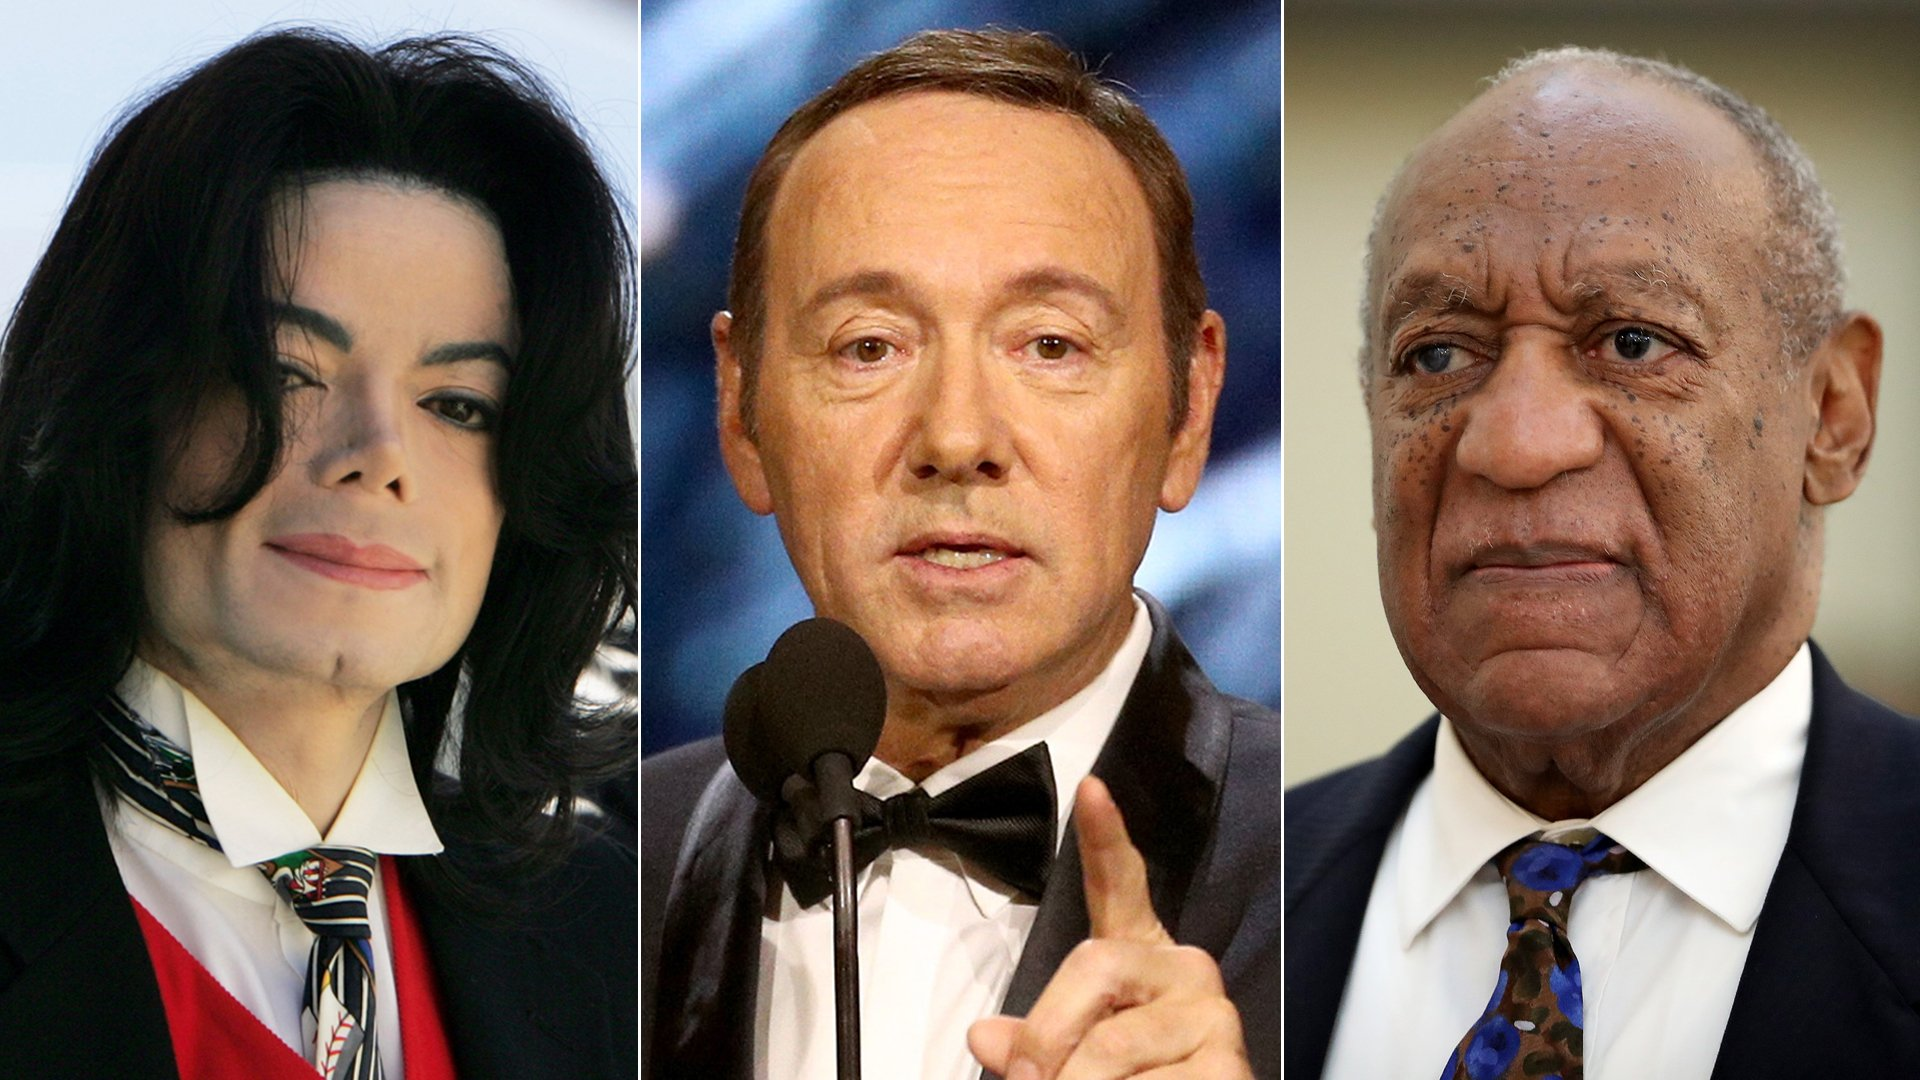 From left: Michael Jackson arrives at a Santa Barbara County courthouse in April 2005, Kevin Spacey presents an award at the 2017 Britannia Awards in Beverly Hills and Bill Cosby is seen in a Montgomery County, Pennsylvania, courtroom in September 2018. (Credit: Justin Sullivan / Frederick M. Brown / David Maialetti / Getty Images)